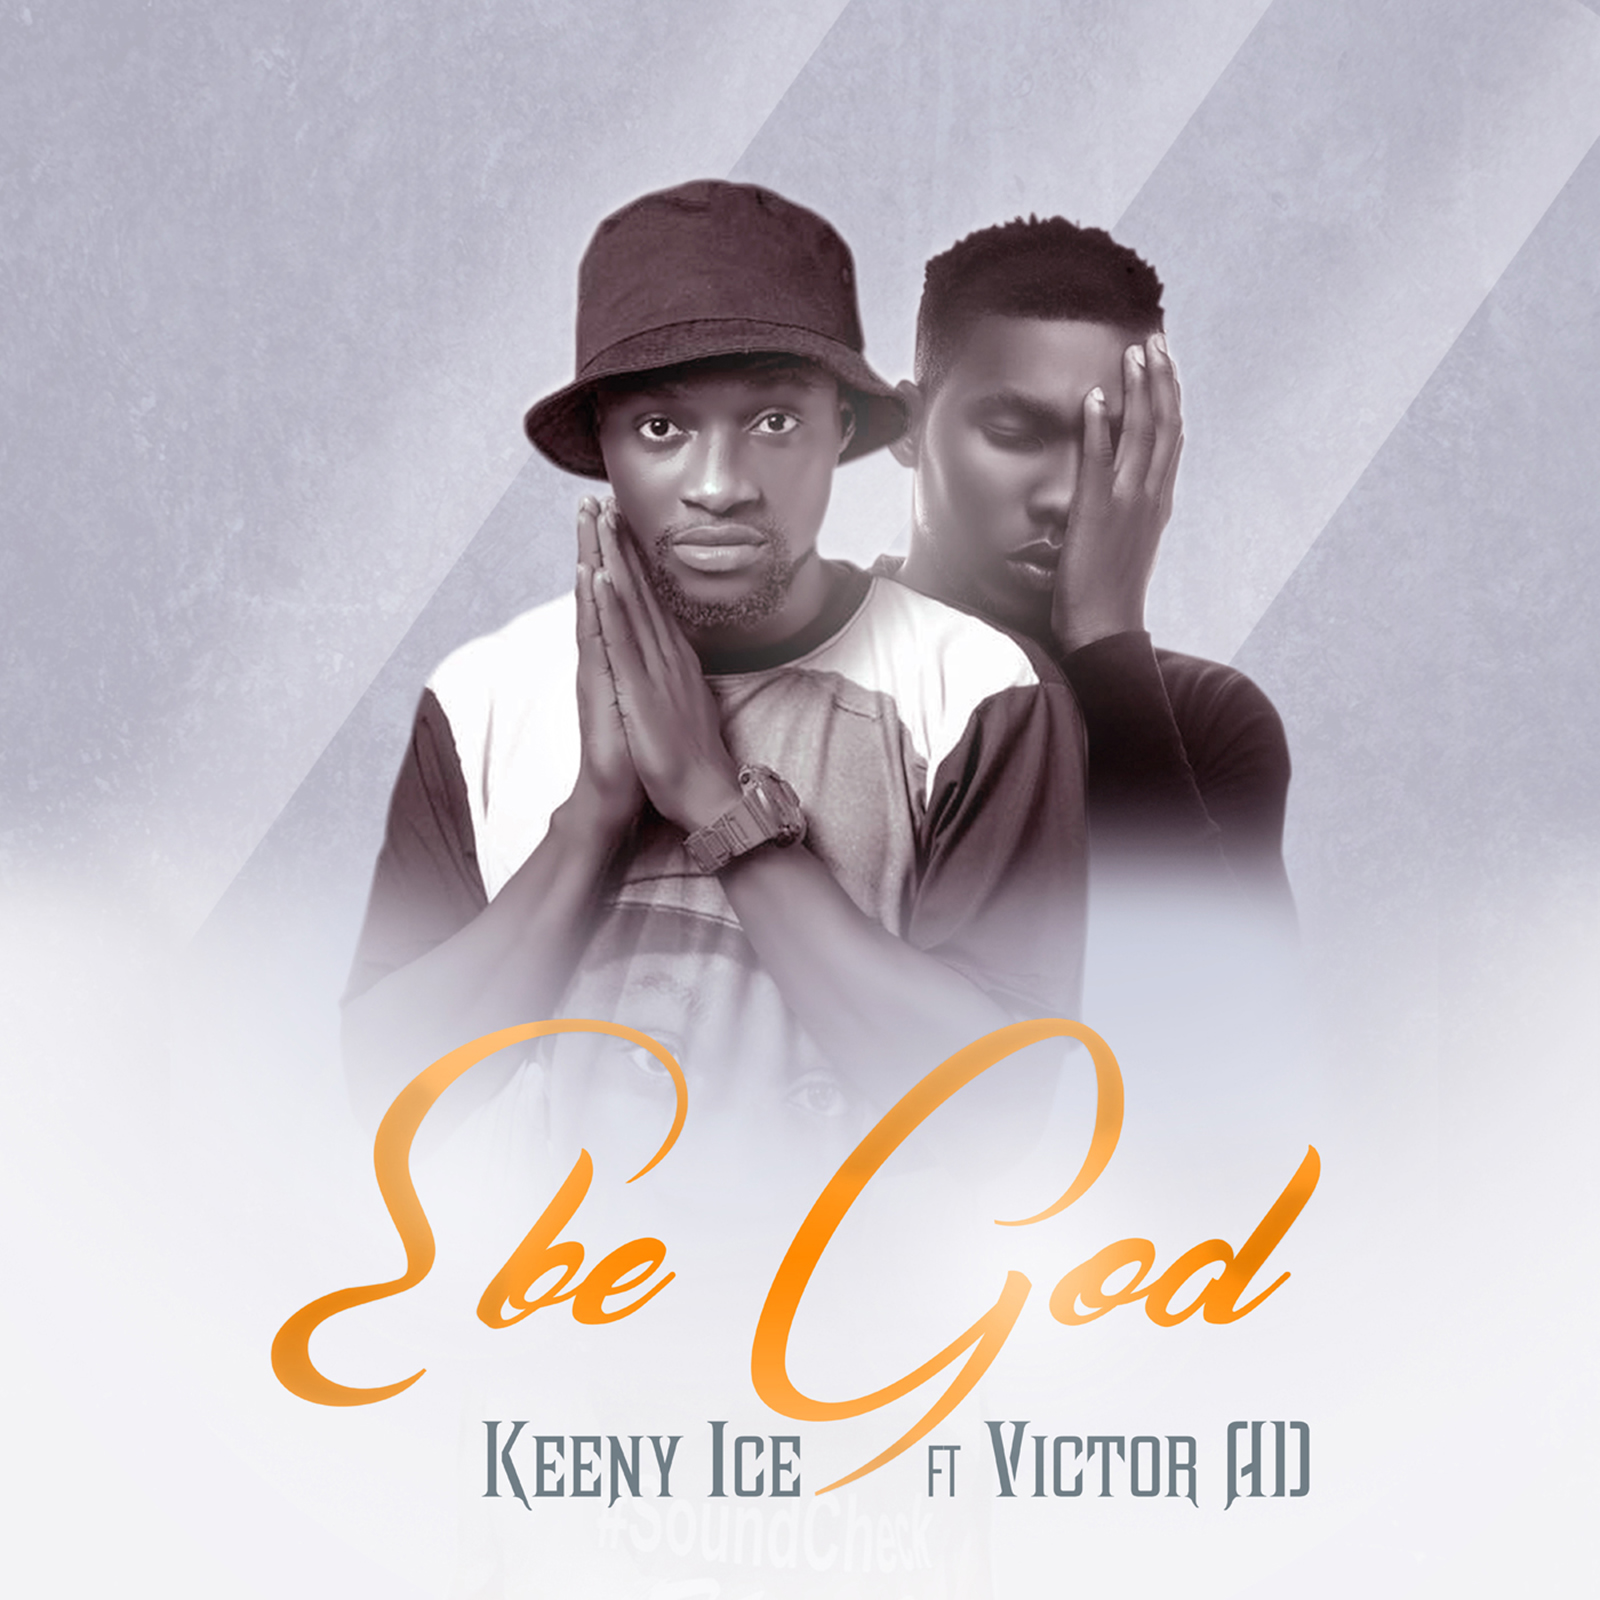 Ebe God by Keeny Ice feat. Victor AD